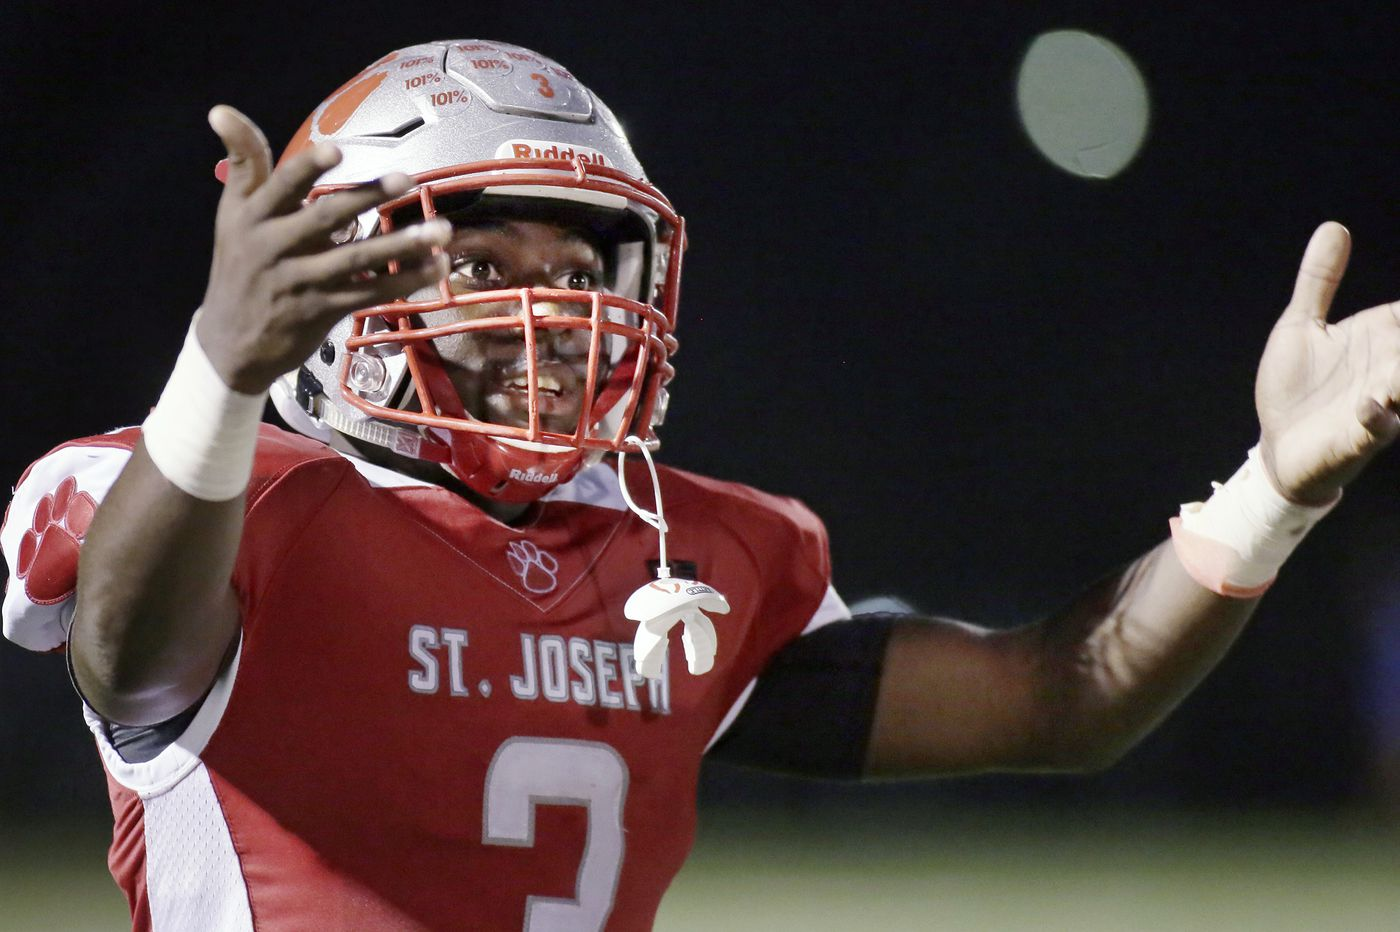 Saturday's South Jersey roundup: Jada Byers accounts for six touchdowns in St. Joseph's win over Montclair Immaculate